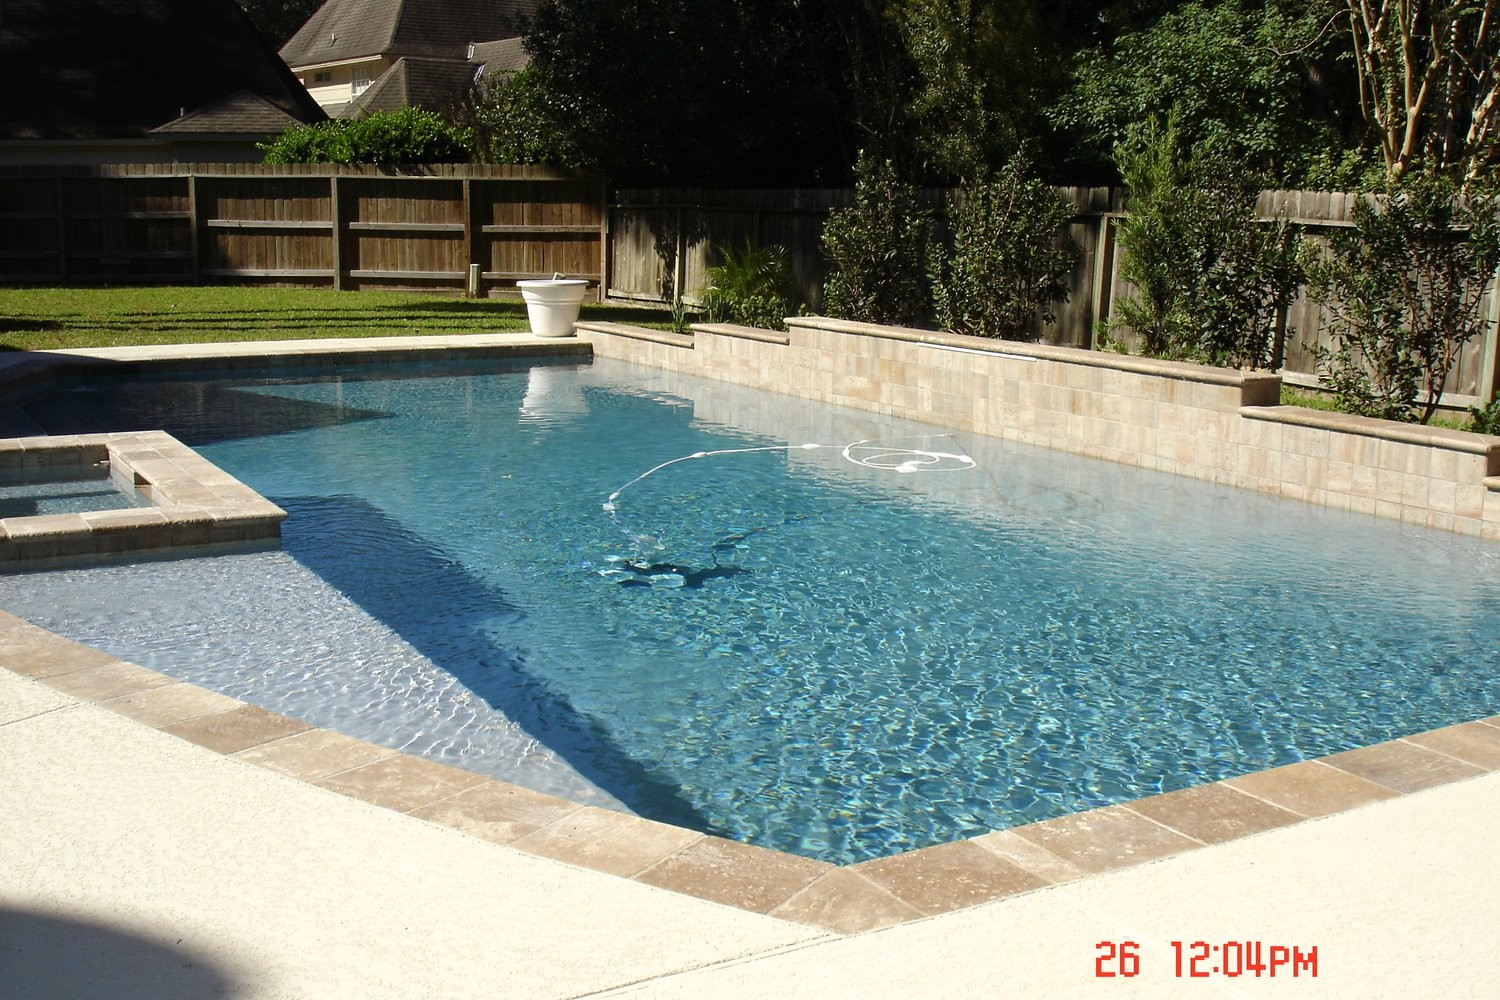 Pool Designs Tomball Katy Houston Cypress Spring